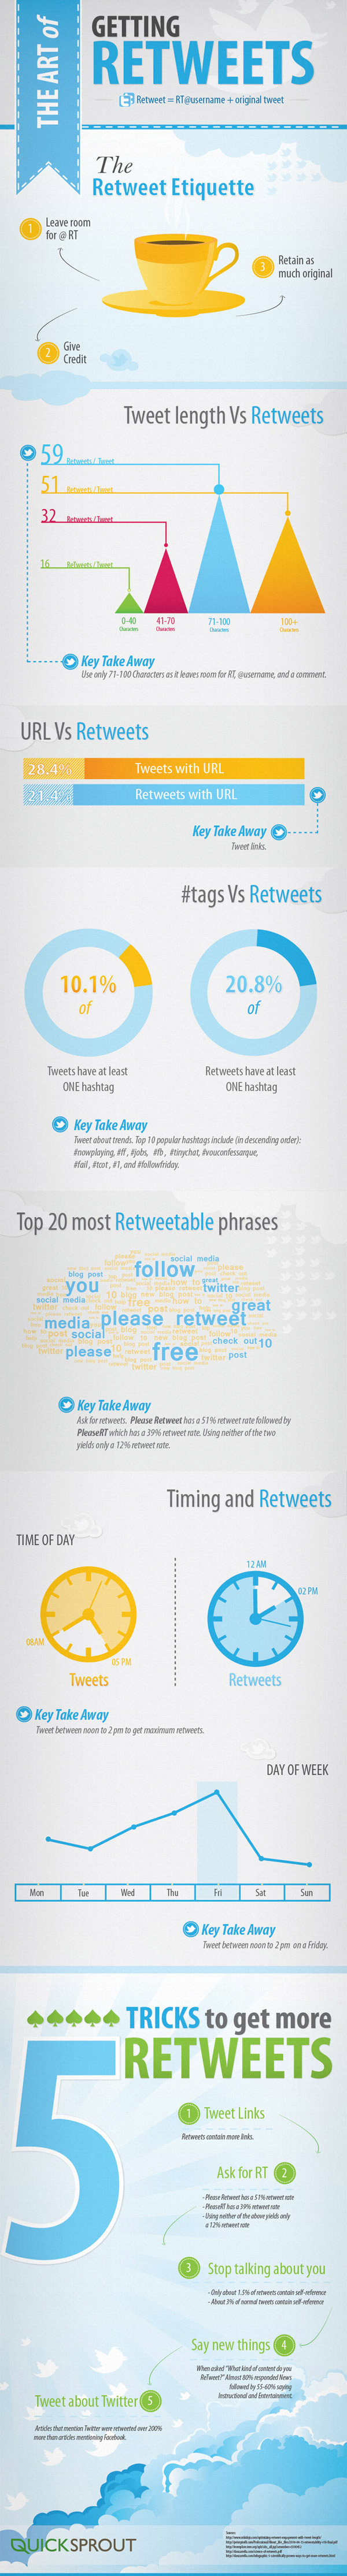 19. The art of getting retweets